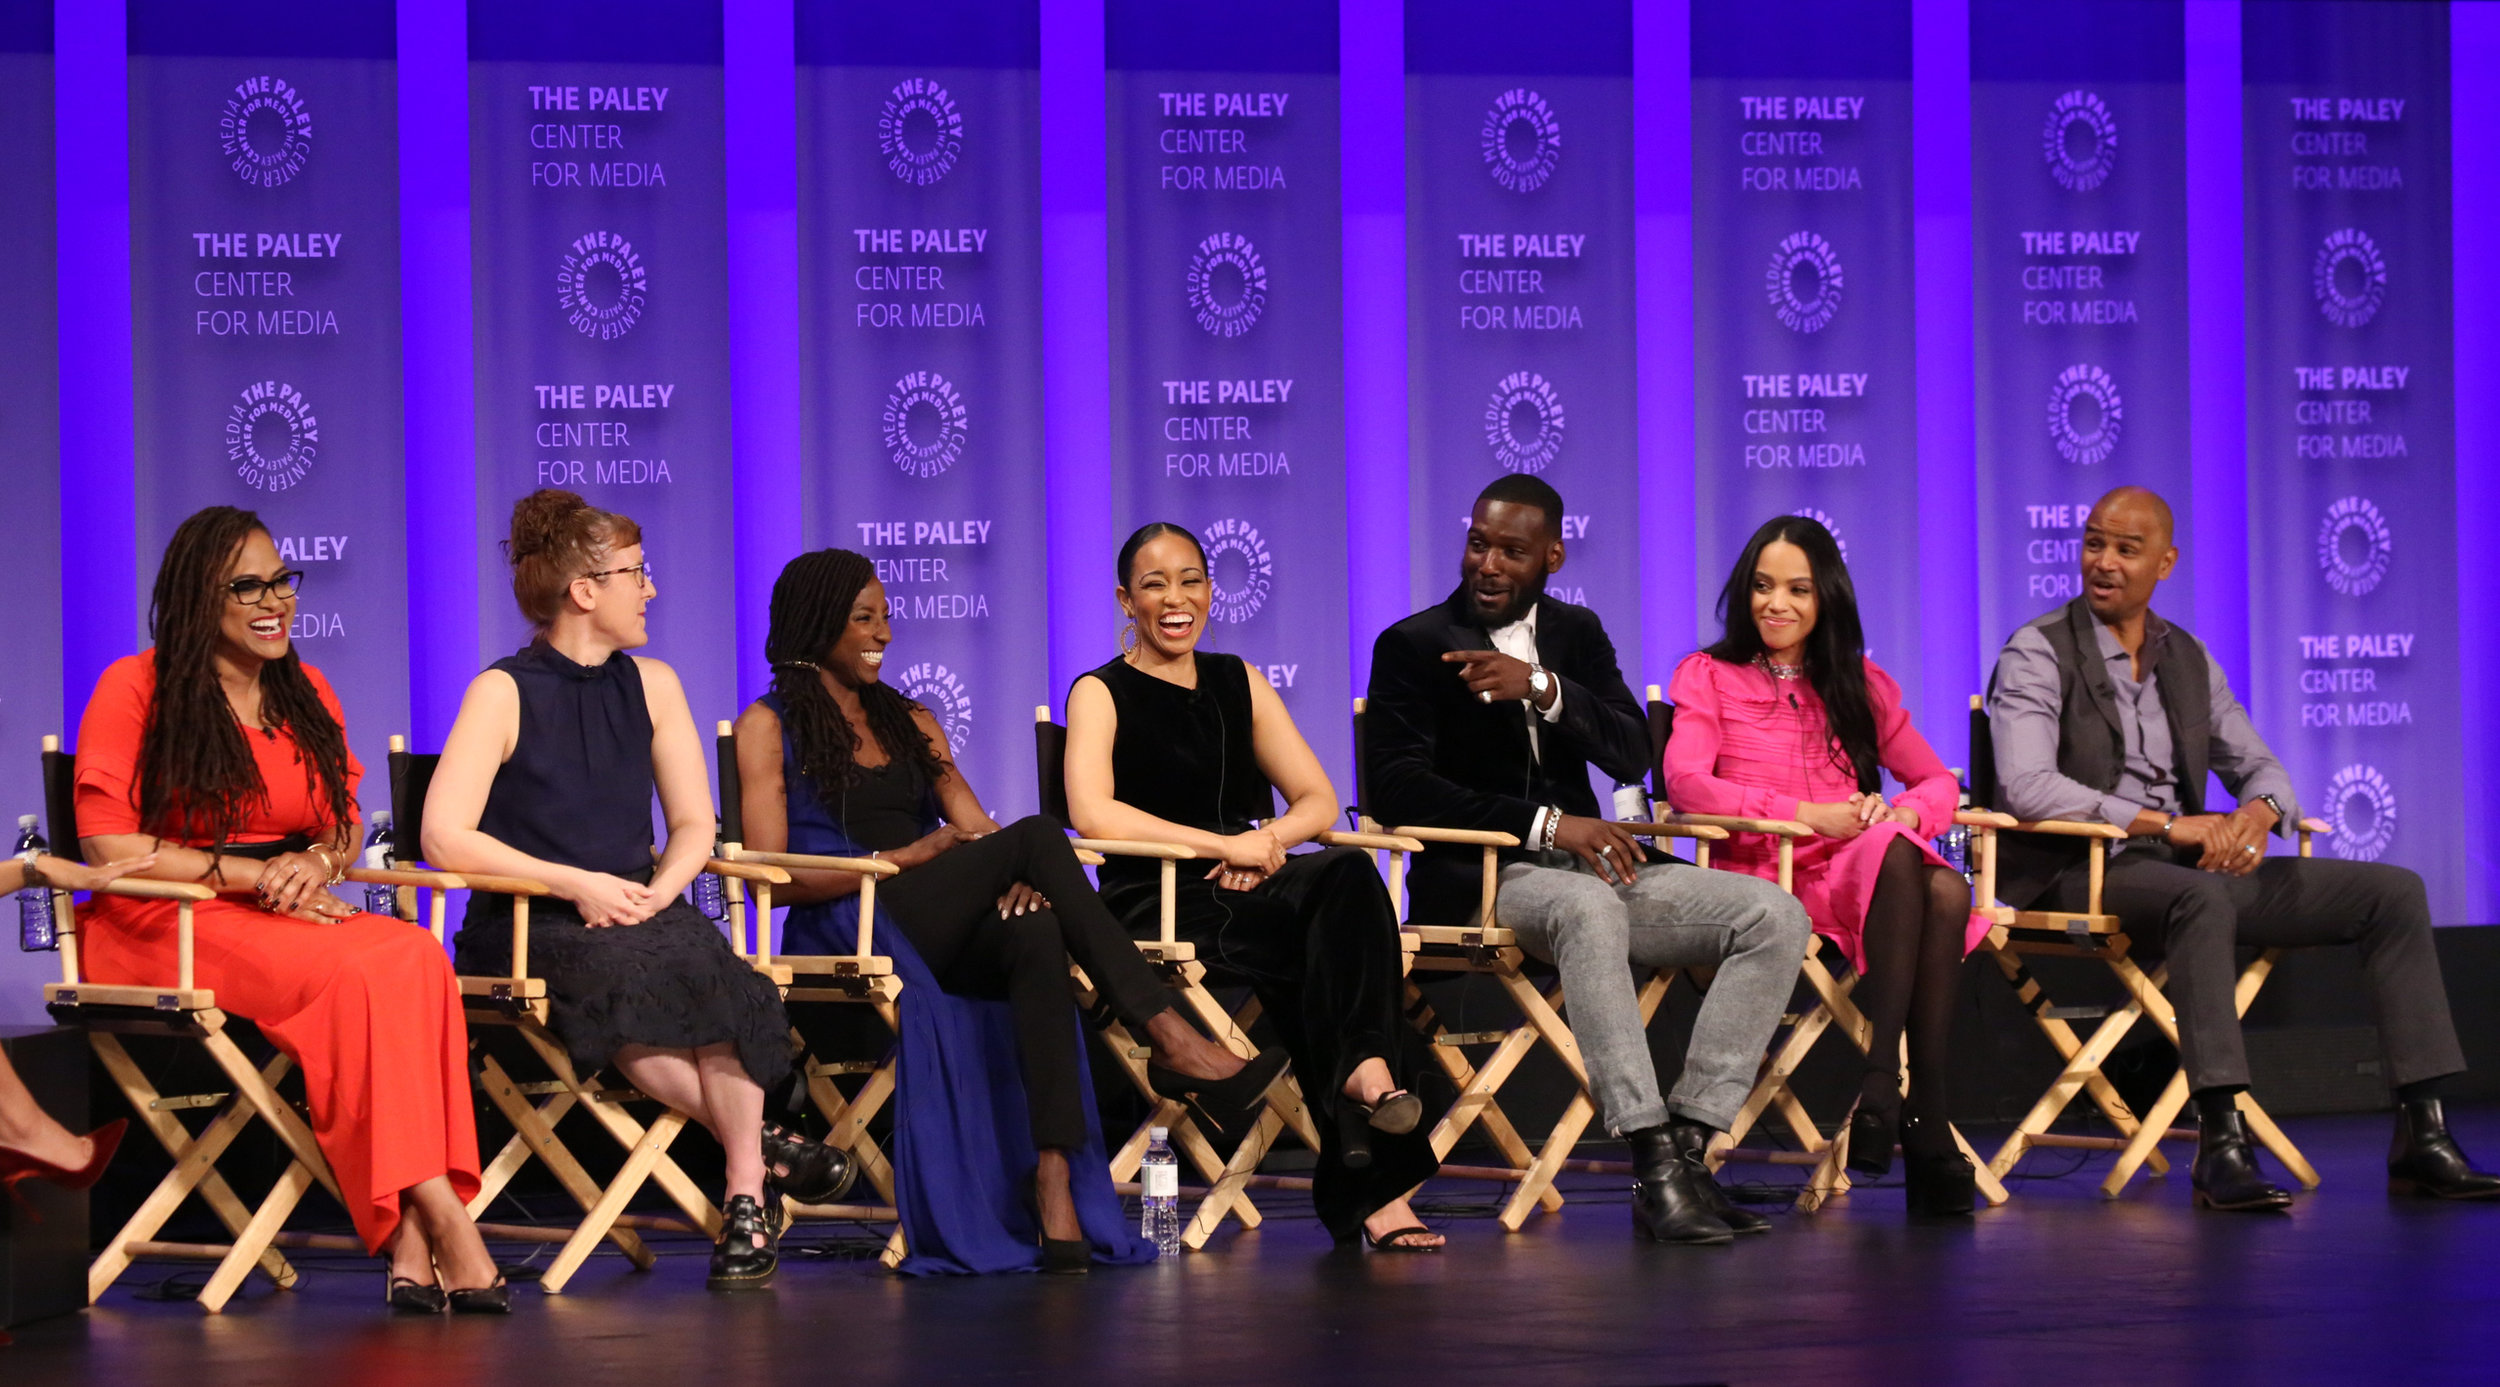 Cast and creatives of Queen Sugar attend PaleyFest LA 2018 honoring Queen Sugar, presented by The Paley Center for Media, at the DOLBY THEATRE on March 24, 2018 in Hollywood, California. Photo Credit:Emily Kneeter for the Paley Center